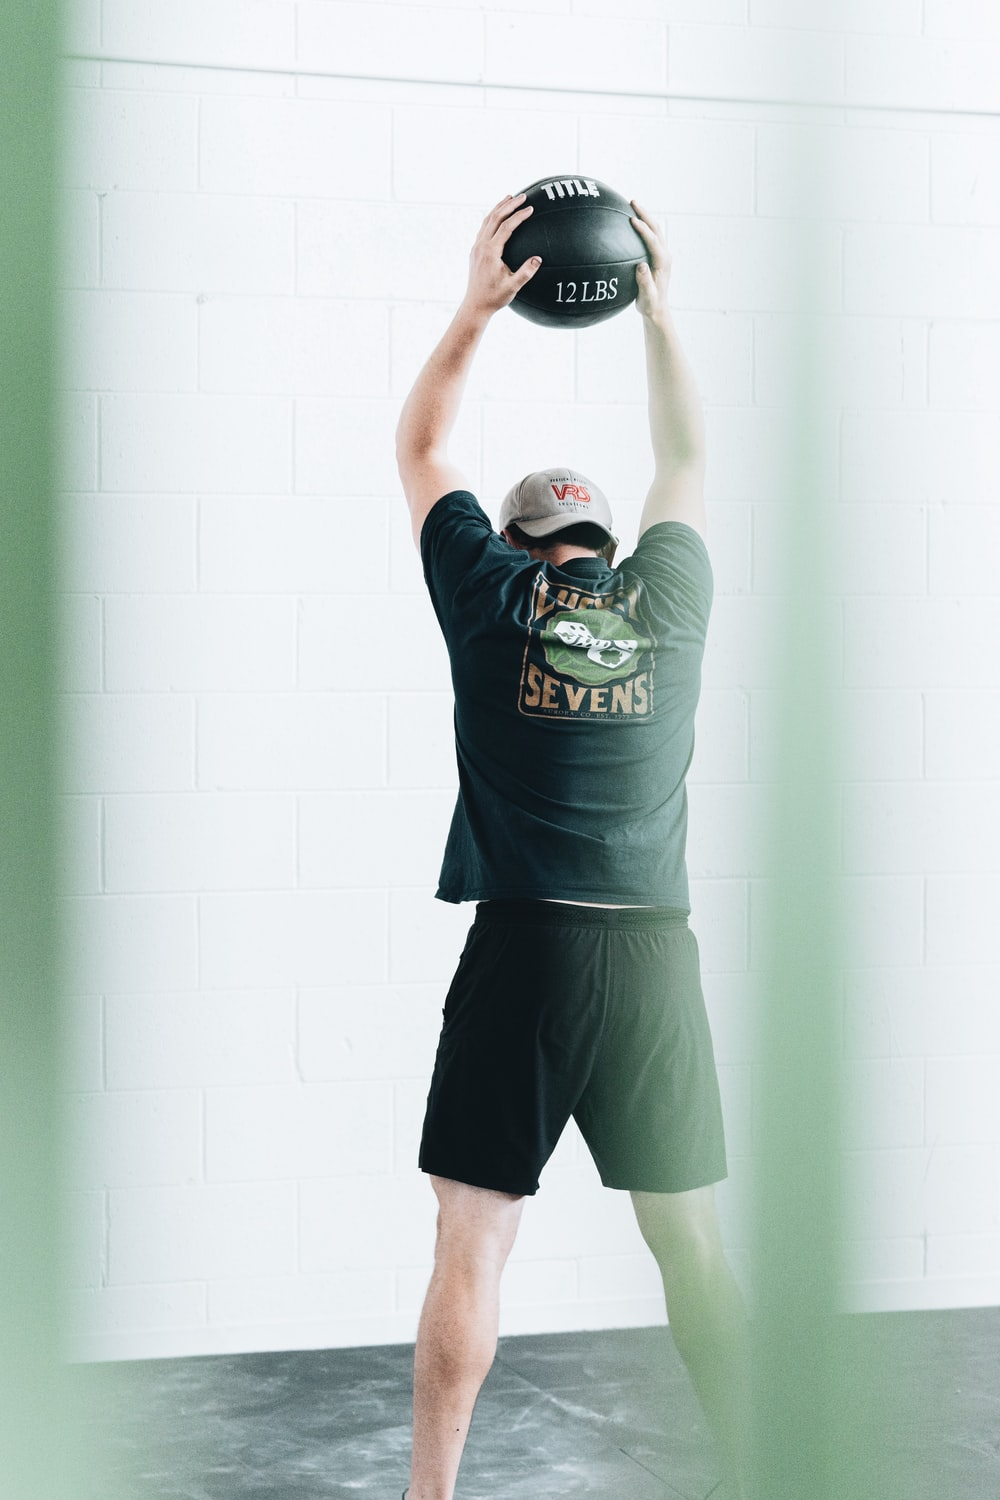 man in green crew neck t-shirt and black shorts holding black and white basketball